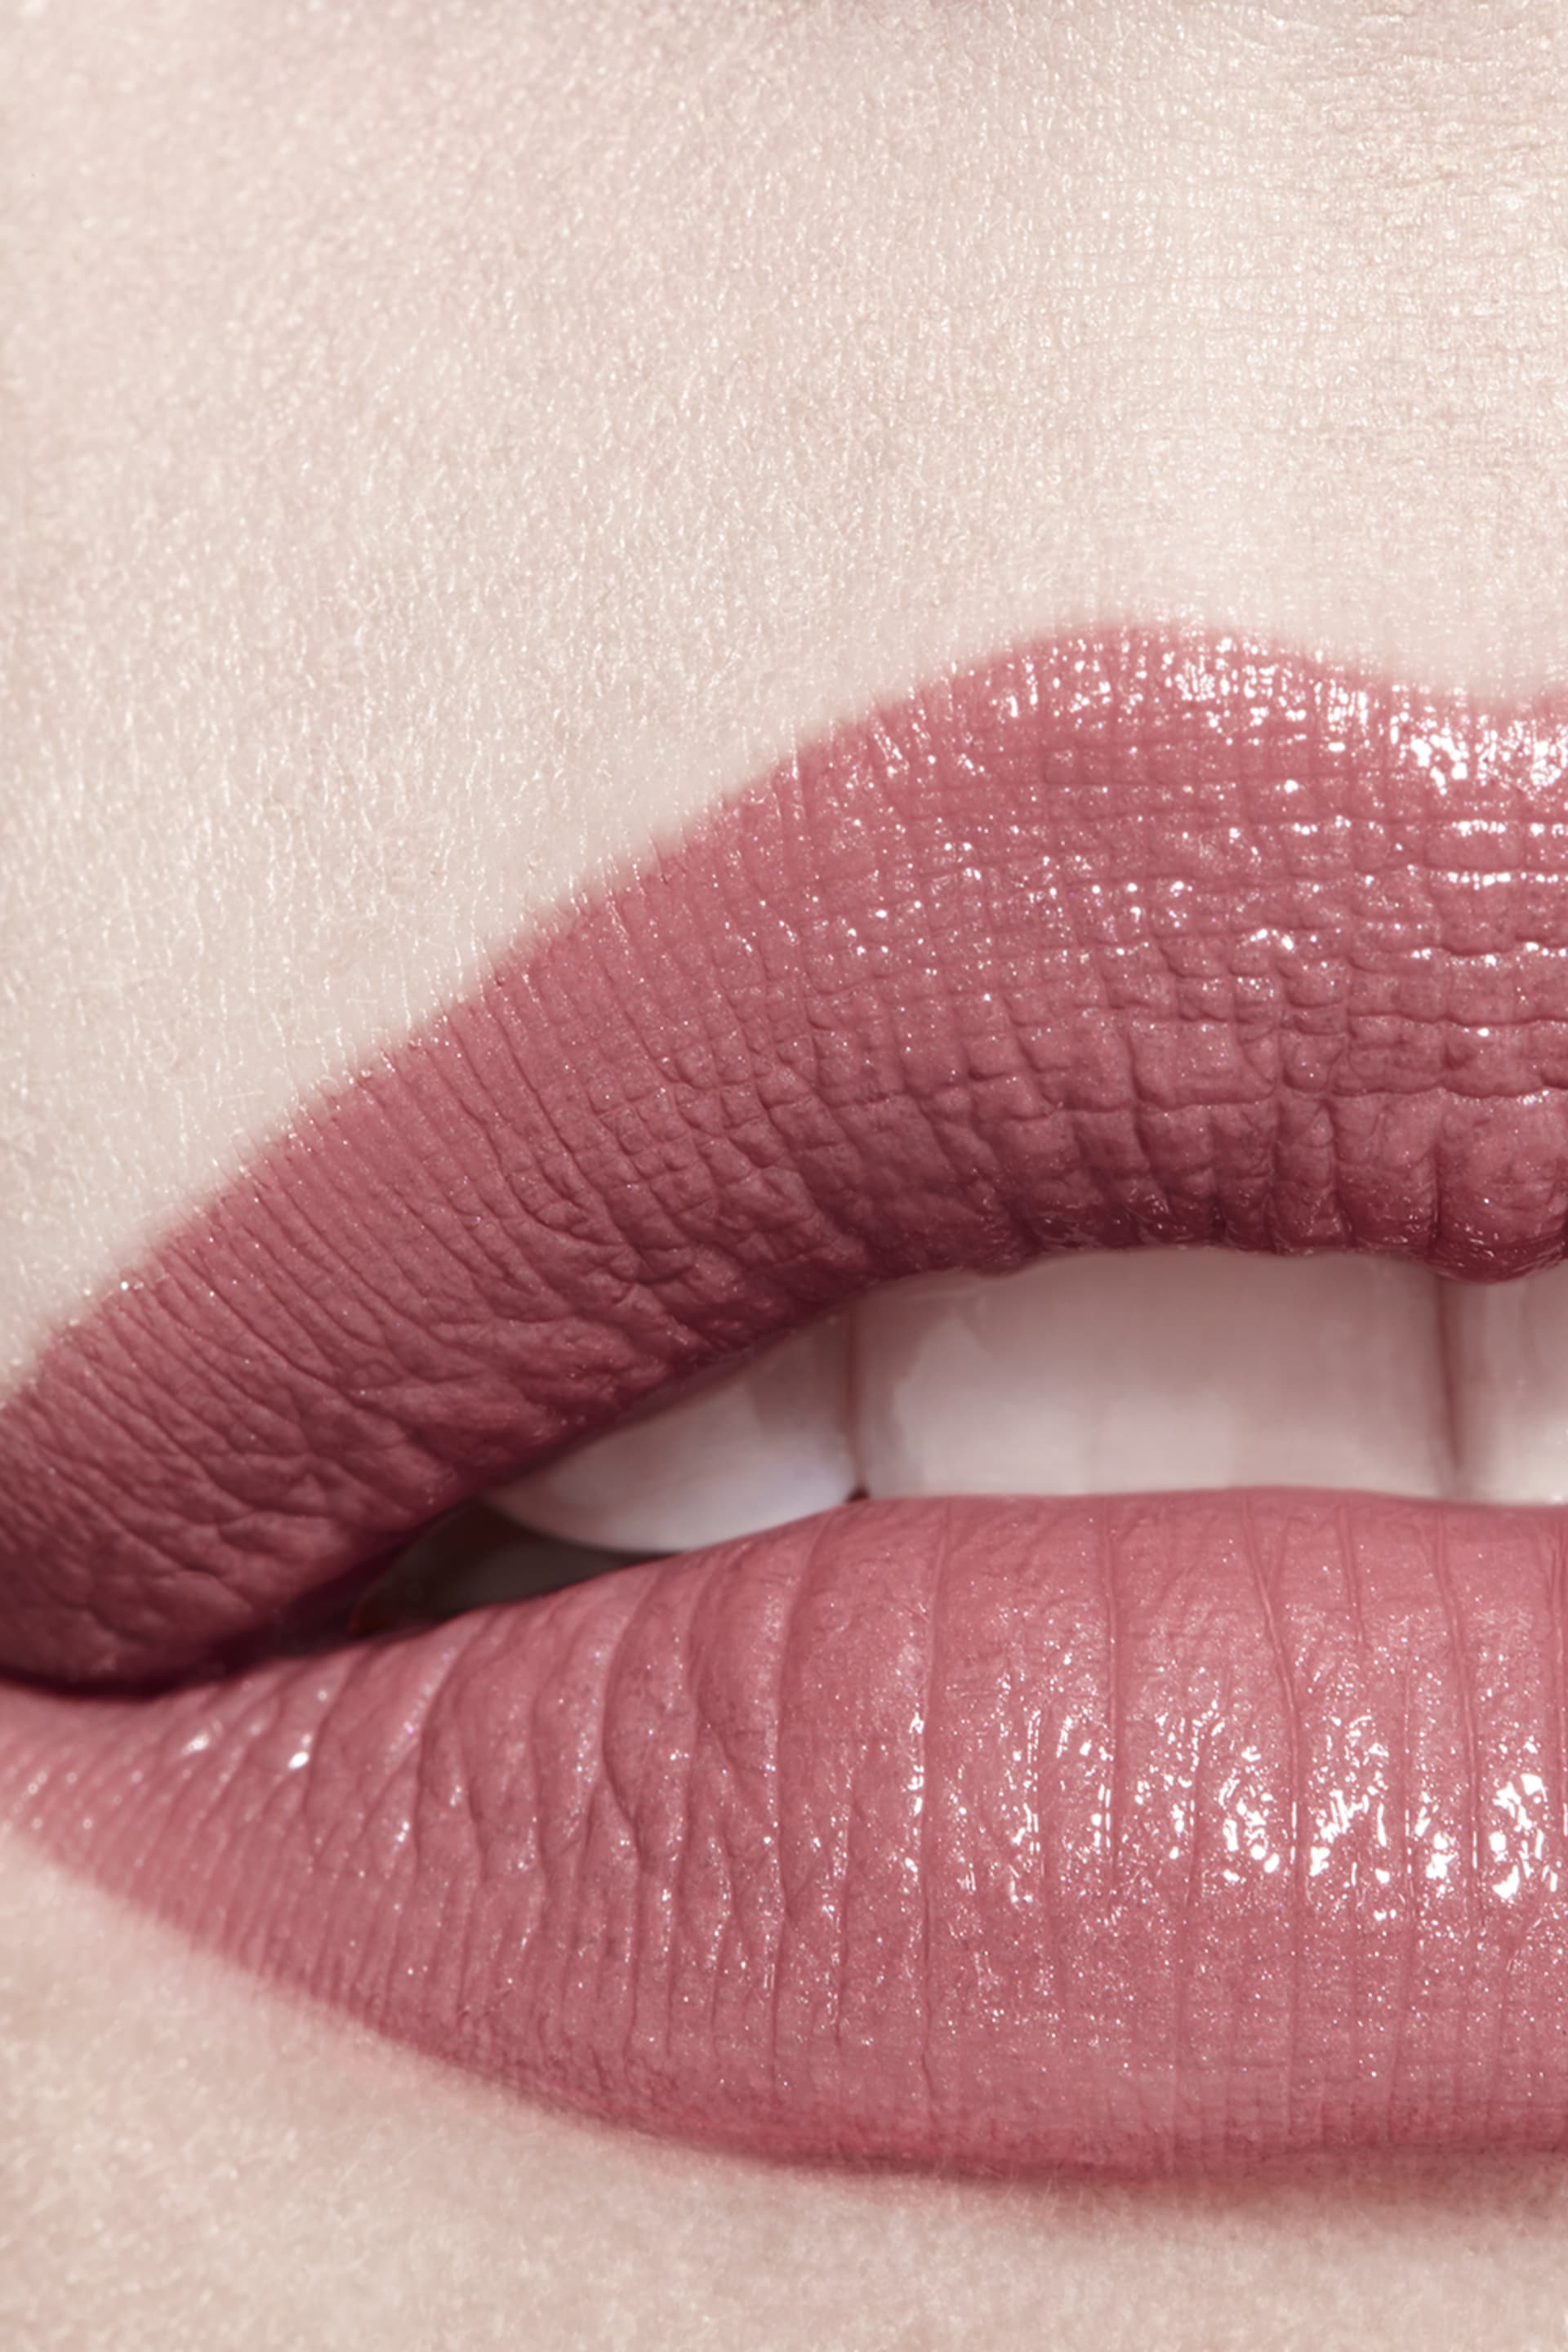 Application makeup visual 3 - ROUGE COCO 436 - MAGGY